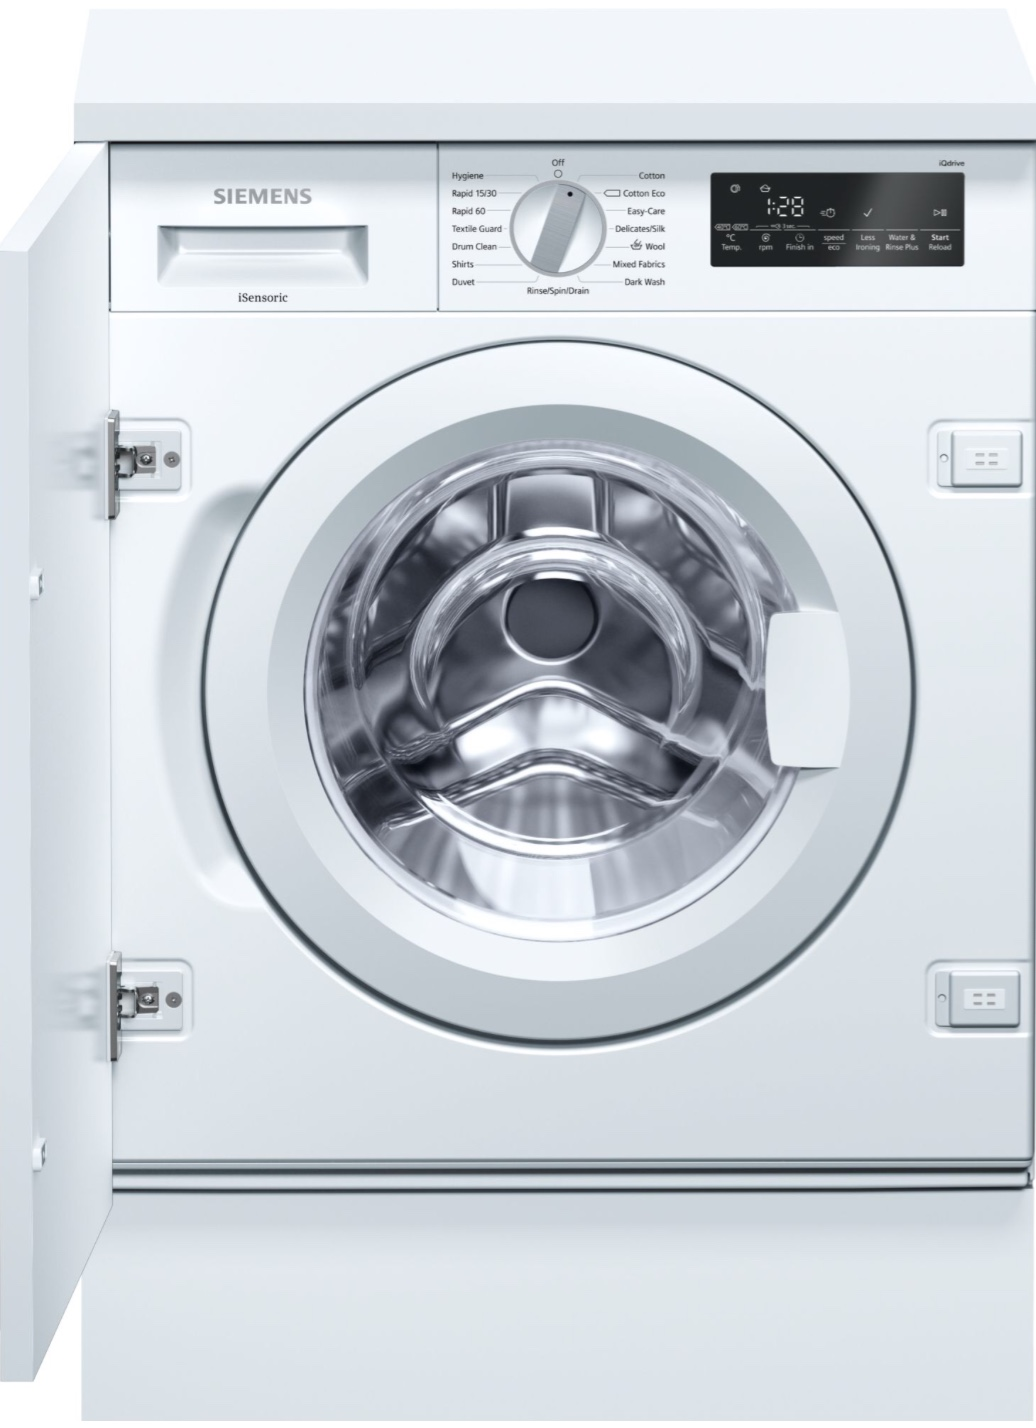 May I Integrate My Freestanding Washing Machine? - Richard and Richard's